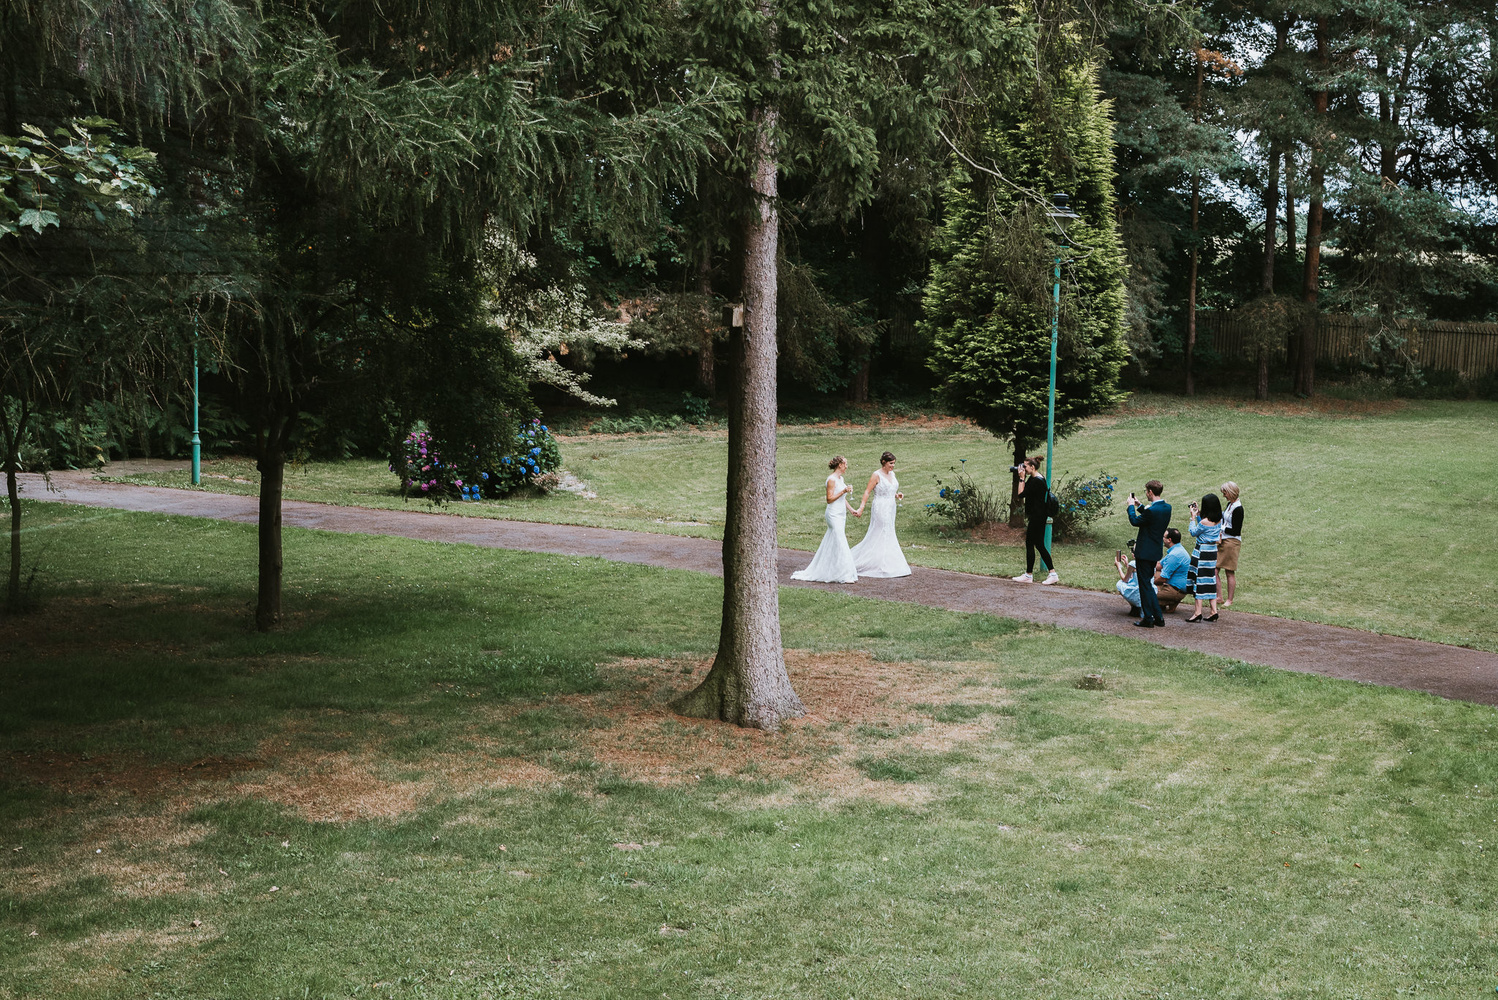 A lesbian wedding couple in a park.